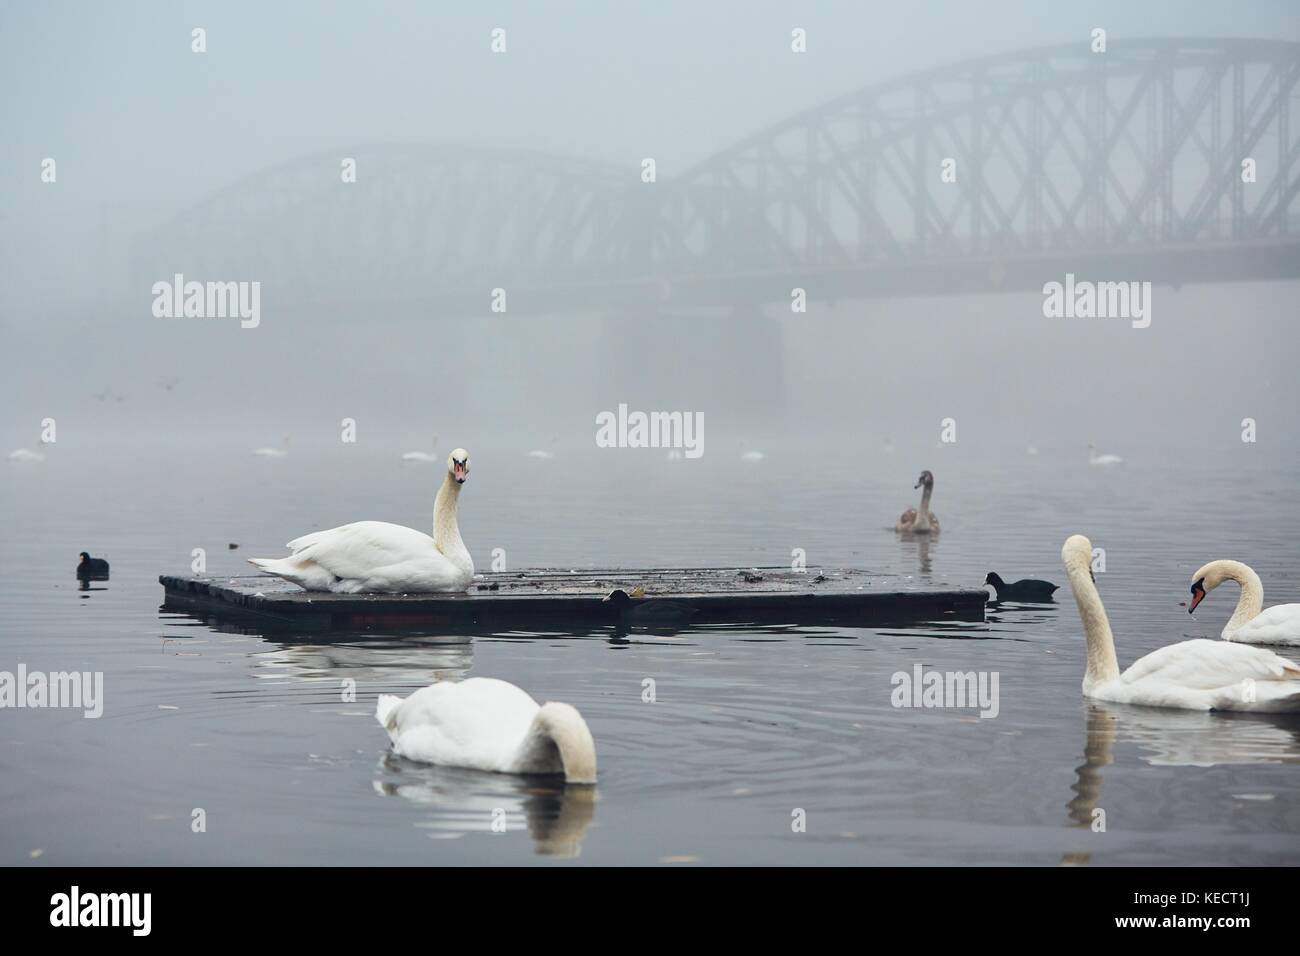 Swan on the river against old iron bridge in mysterious fog. Autumn morning in the city. Prague, Czech Republic - Stock Image